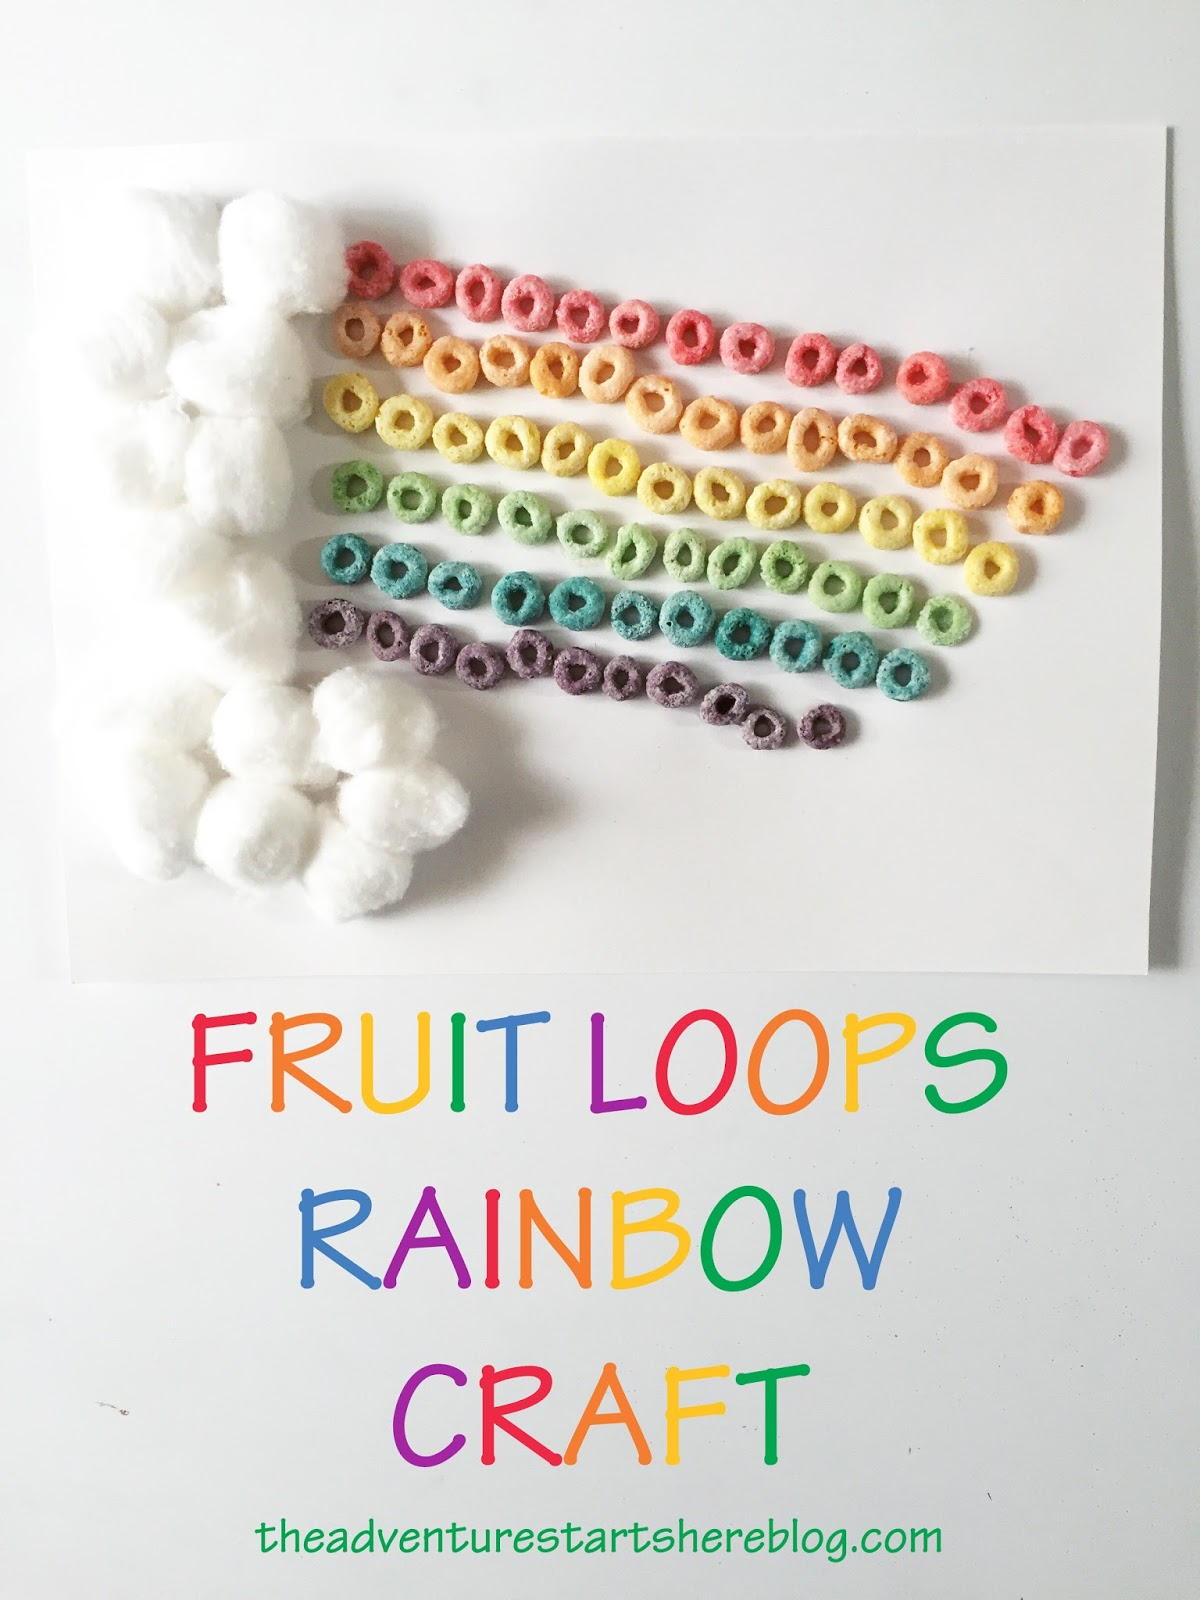 The Adventure Starts Here Fruit Loops Rainbow